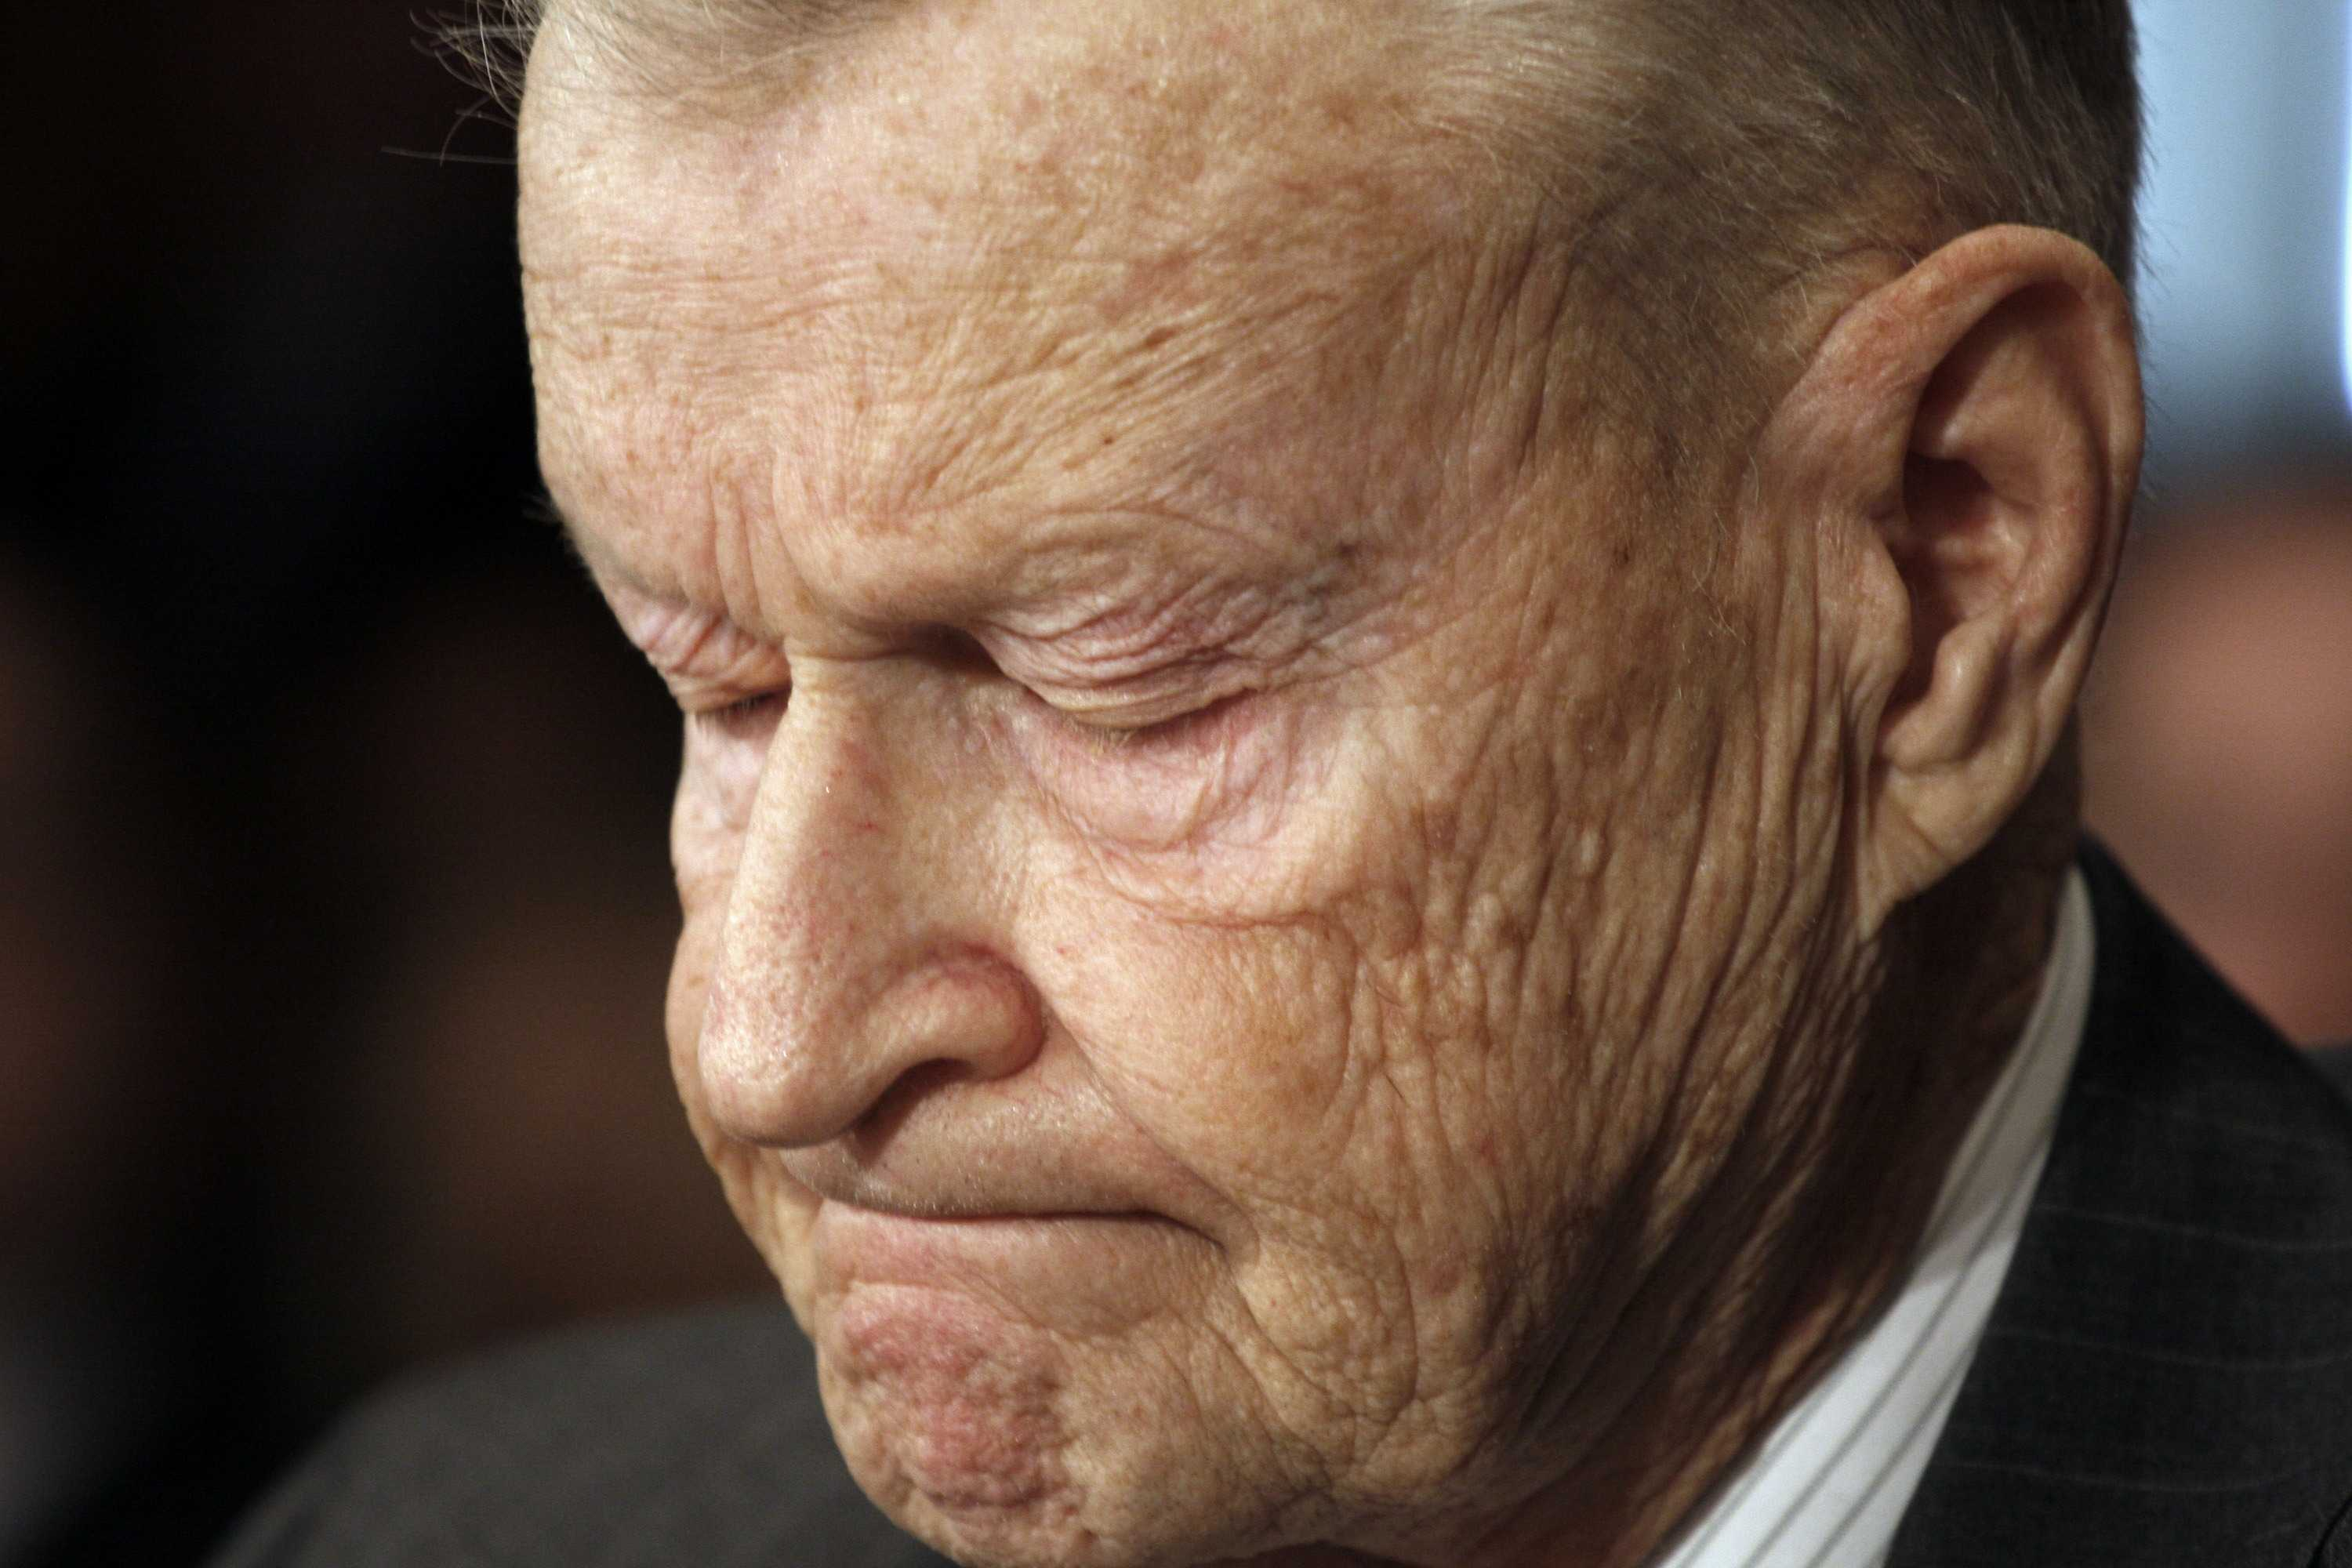 Carter adviser Zbigniew Brzezinski dies at 89